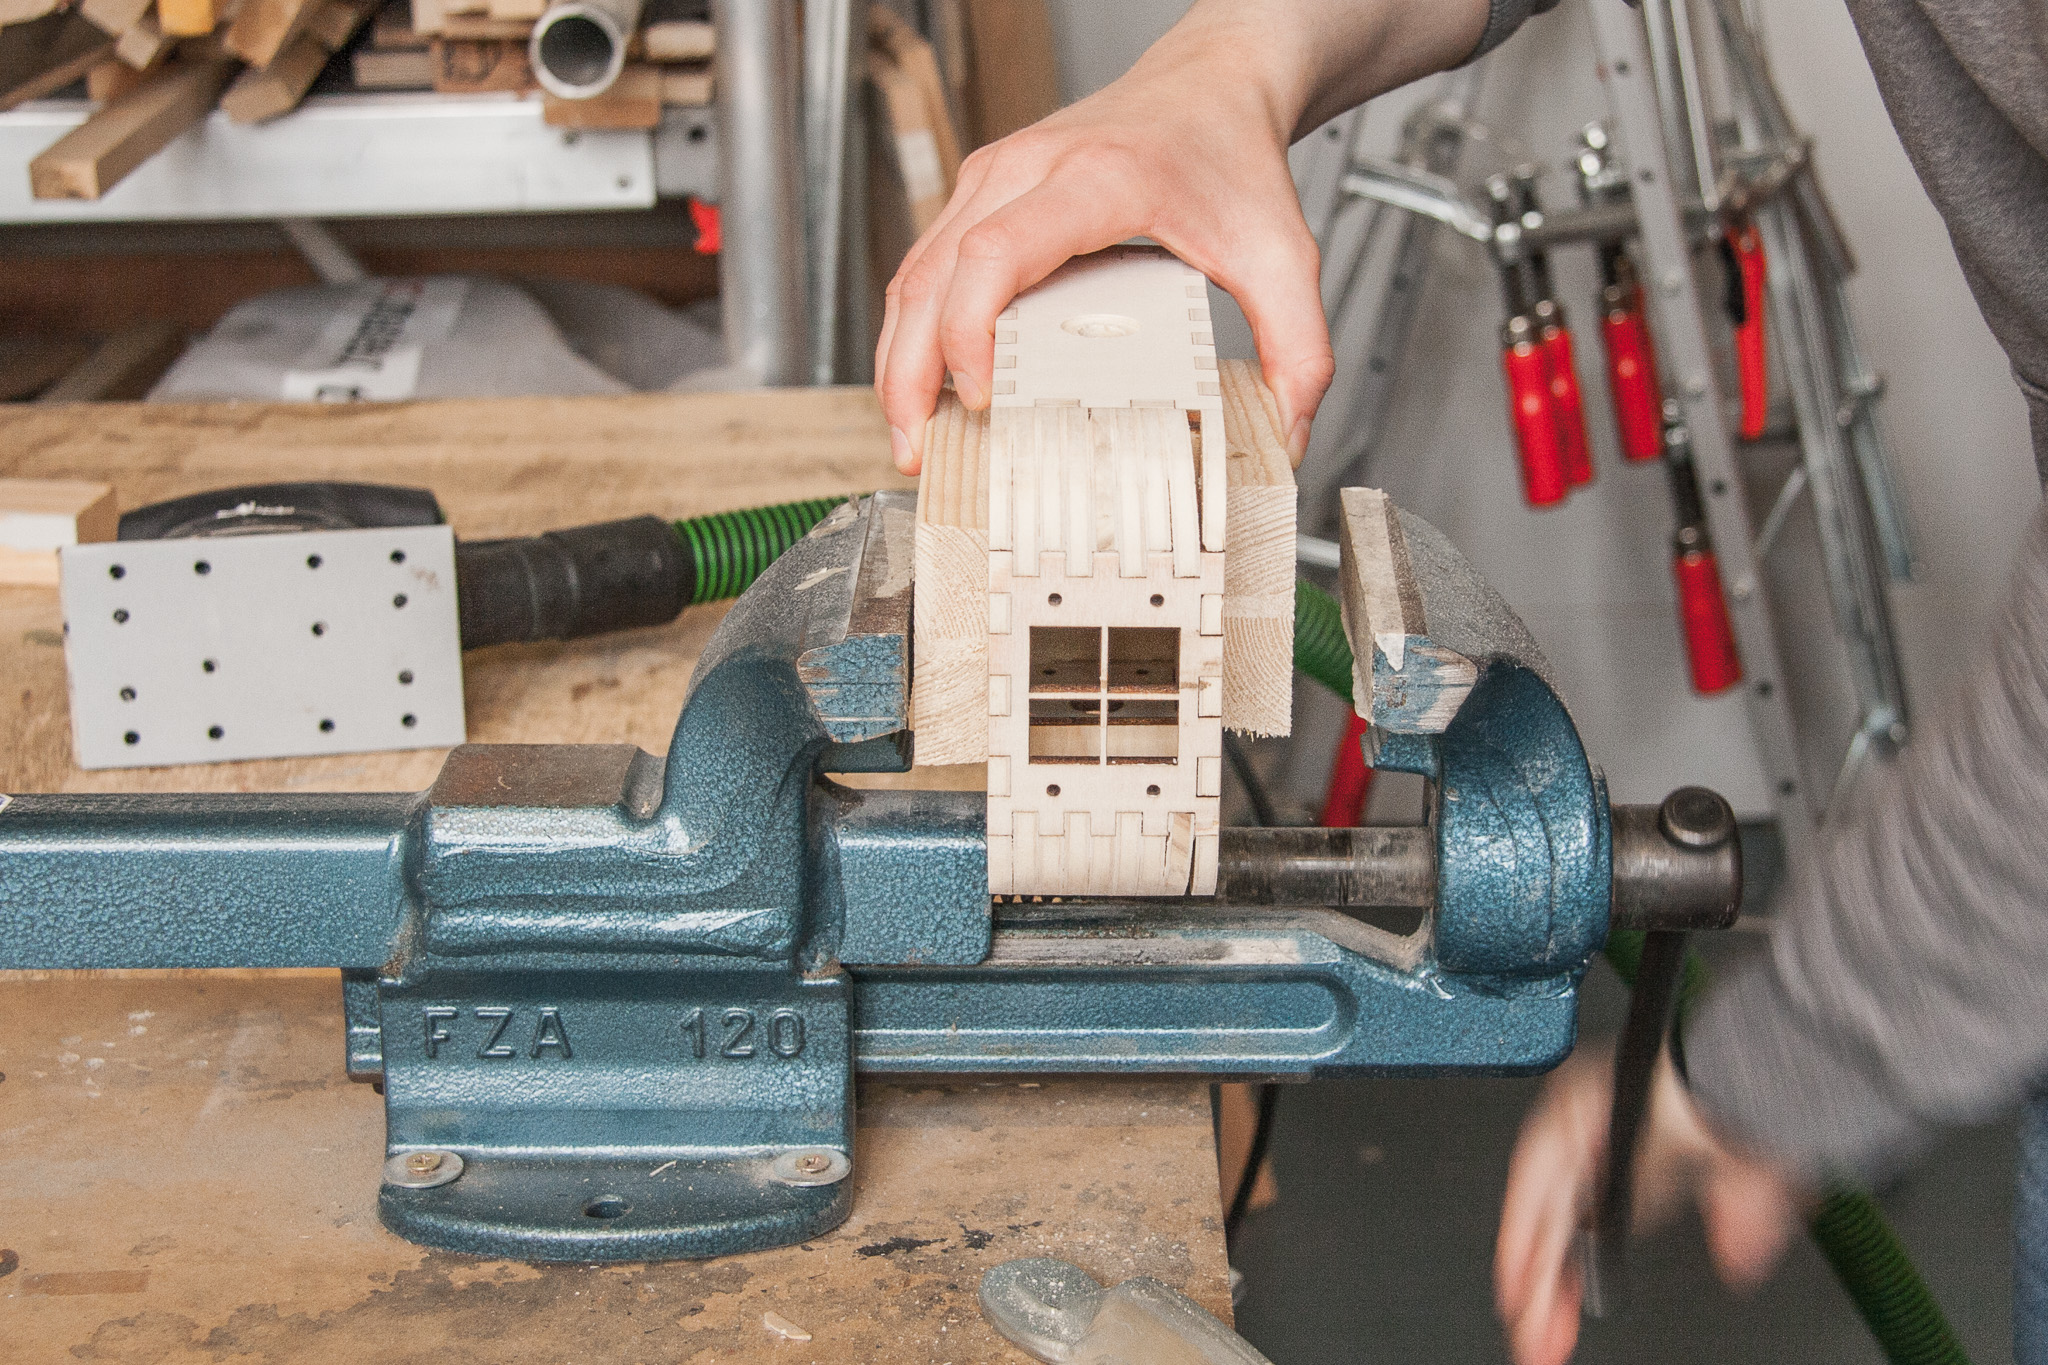 Fix the box in a vise with wooden blocks to protect it from dents.